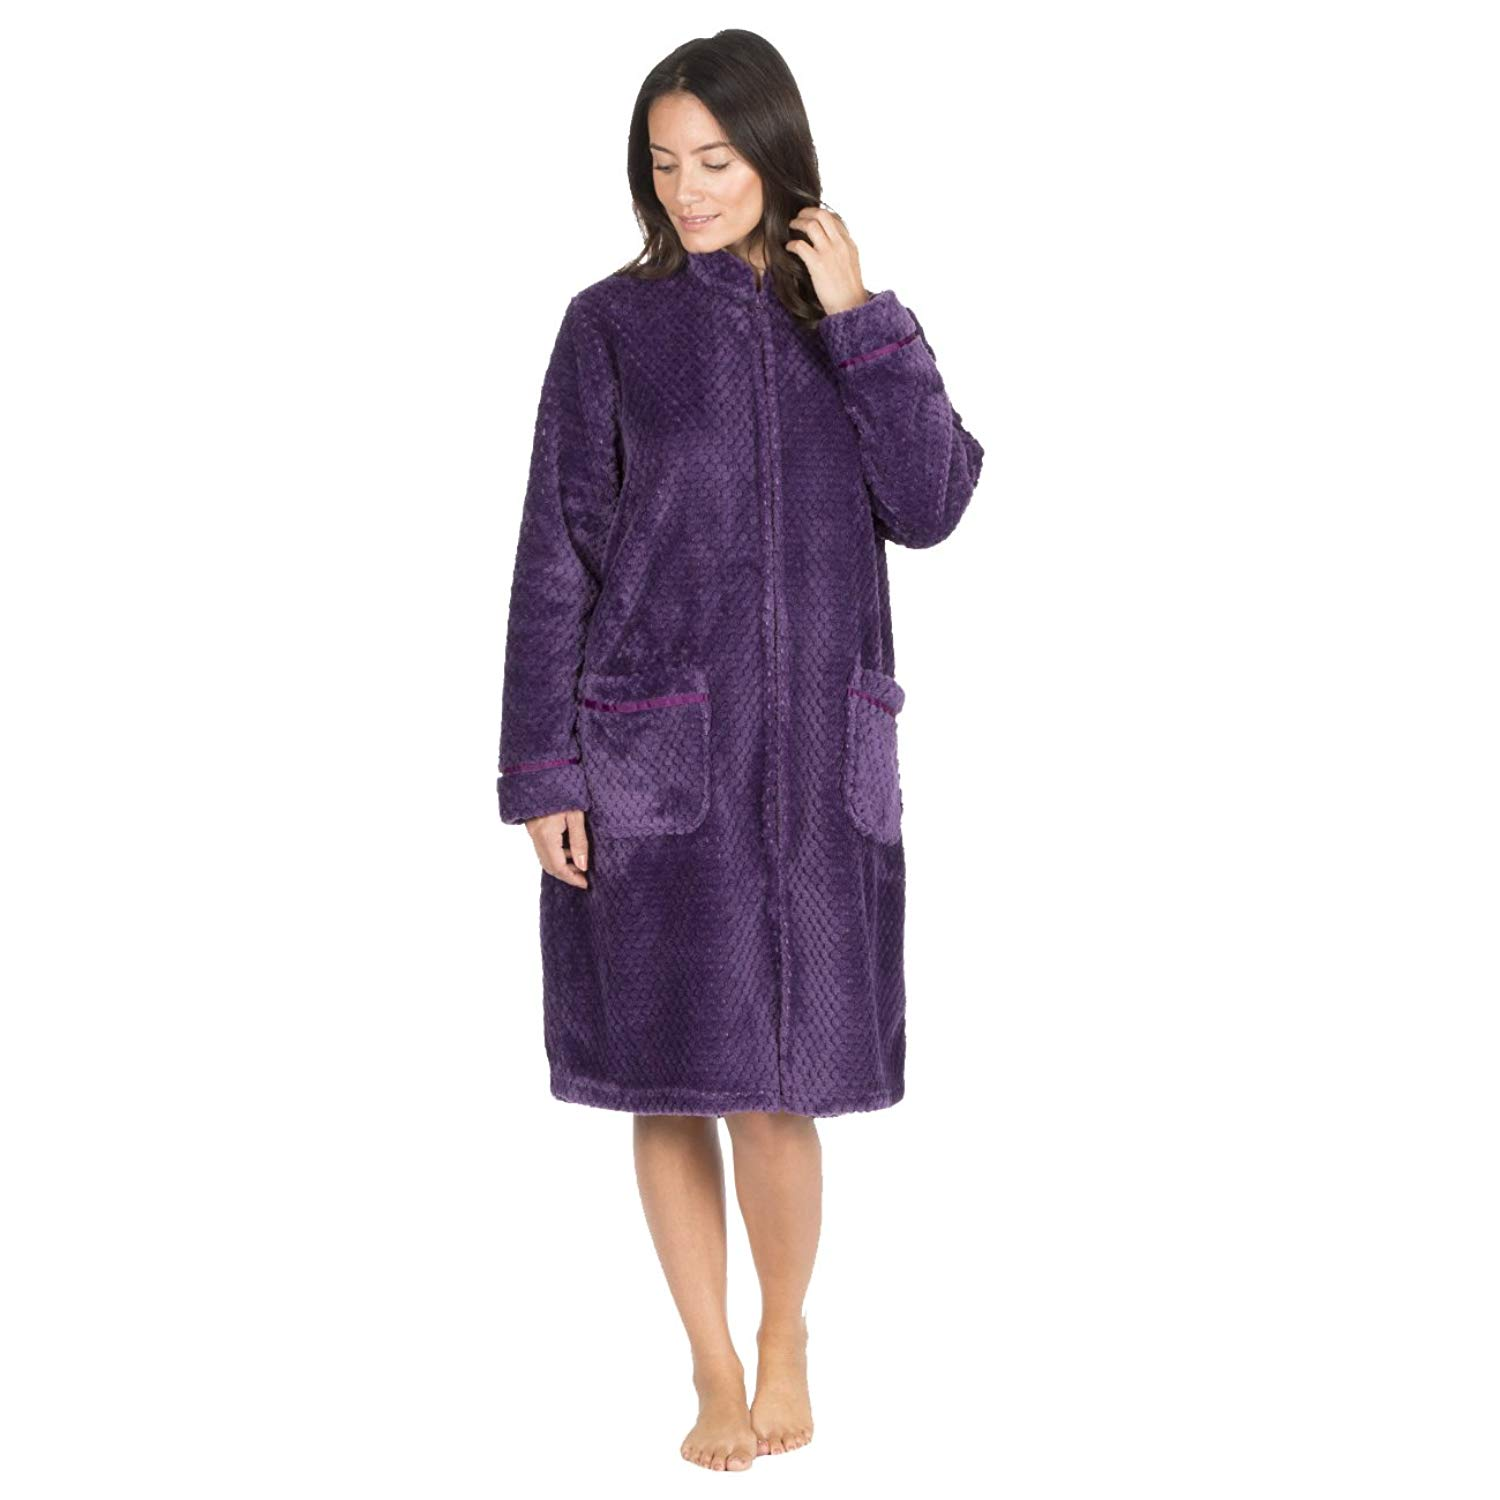 e6b35c9fdc Forever Dreaming Ladies Waffle Fleece Dressing Gown - Zip Up Fluffy  Housecoat